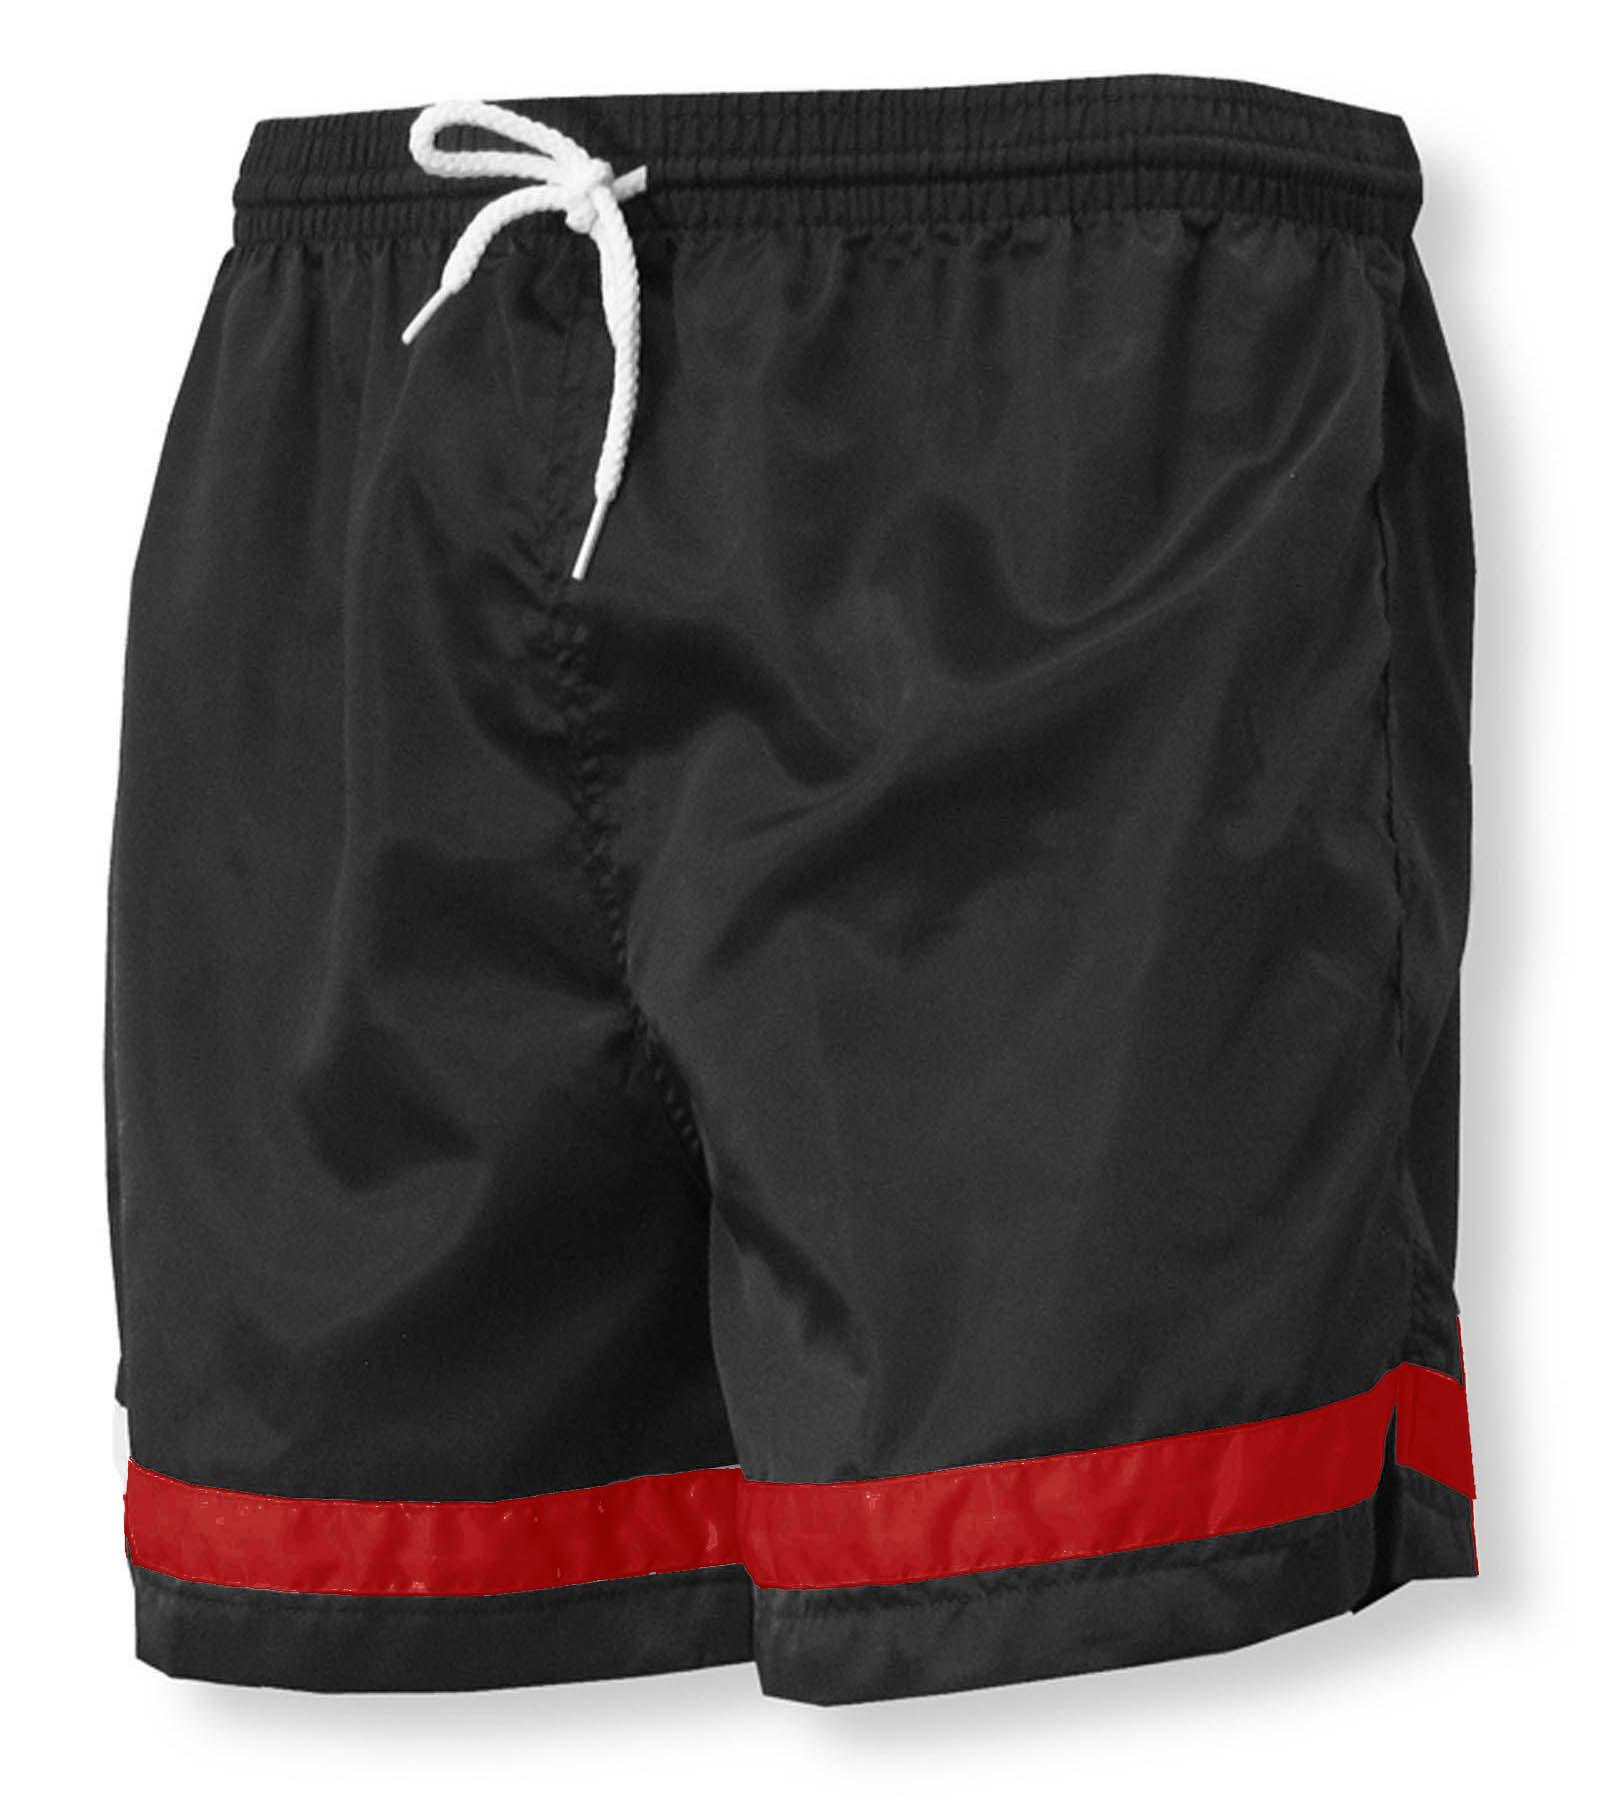 Vashon soccer shorts in black/red by Code Four Athletics